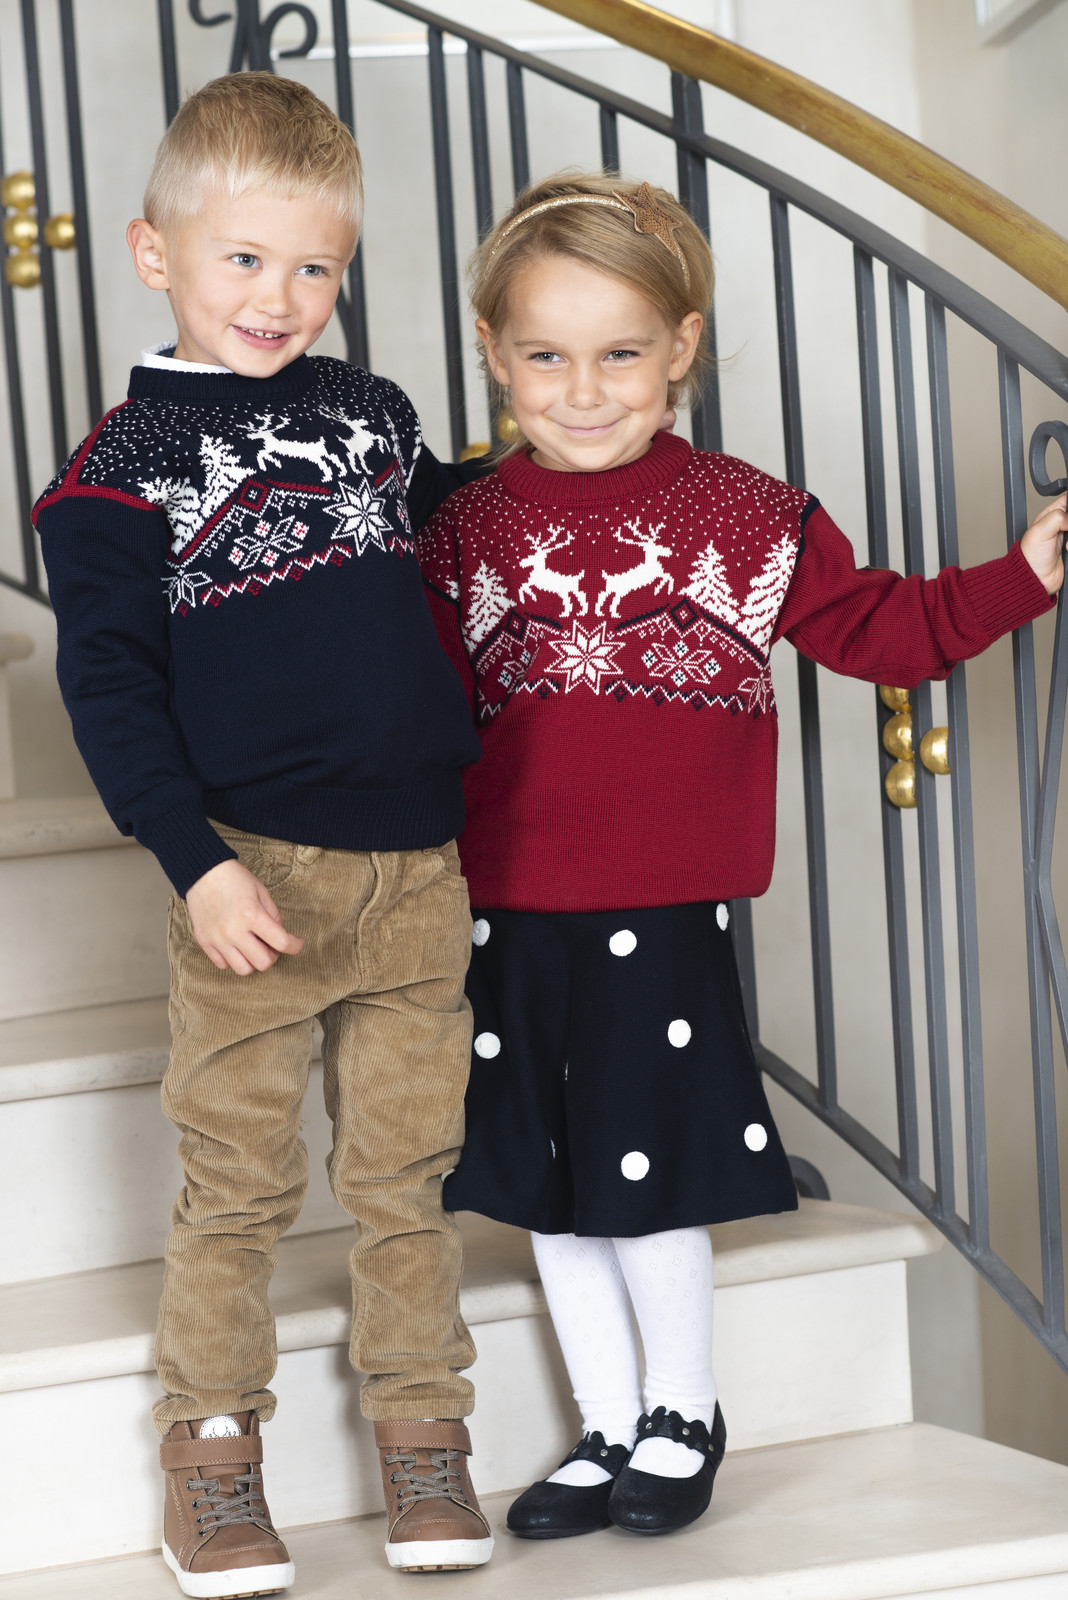 Kids wearing Dale of Norway Dale Christmas sweaters in Red Rose, 93941-B and Navy, 93941-C